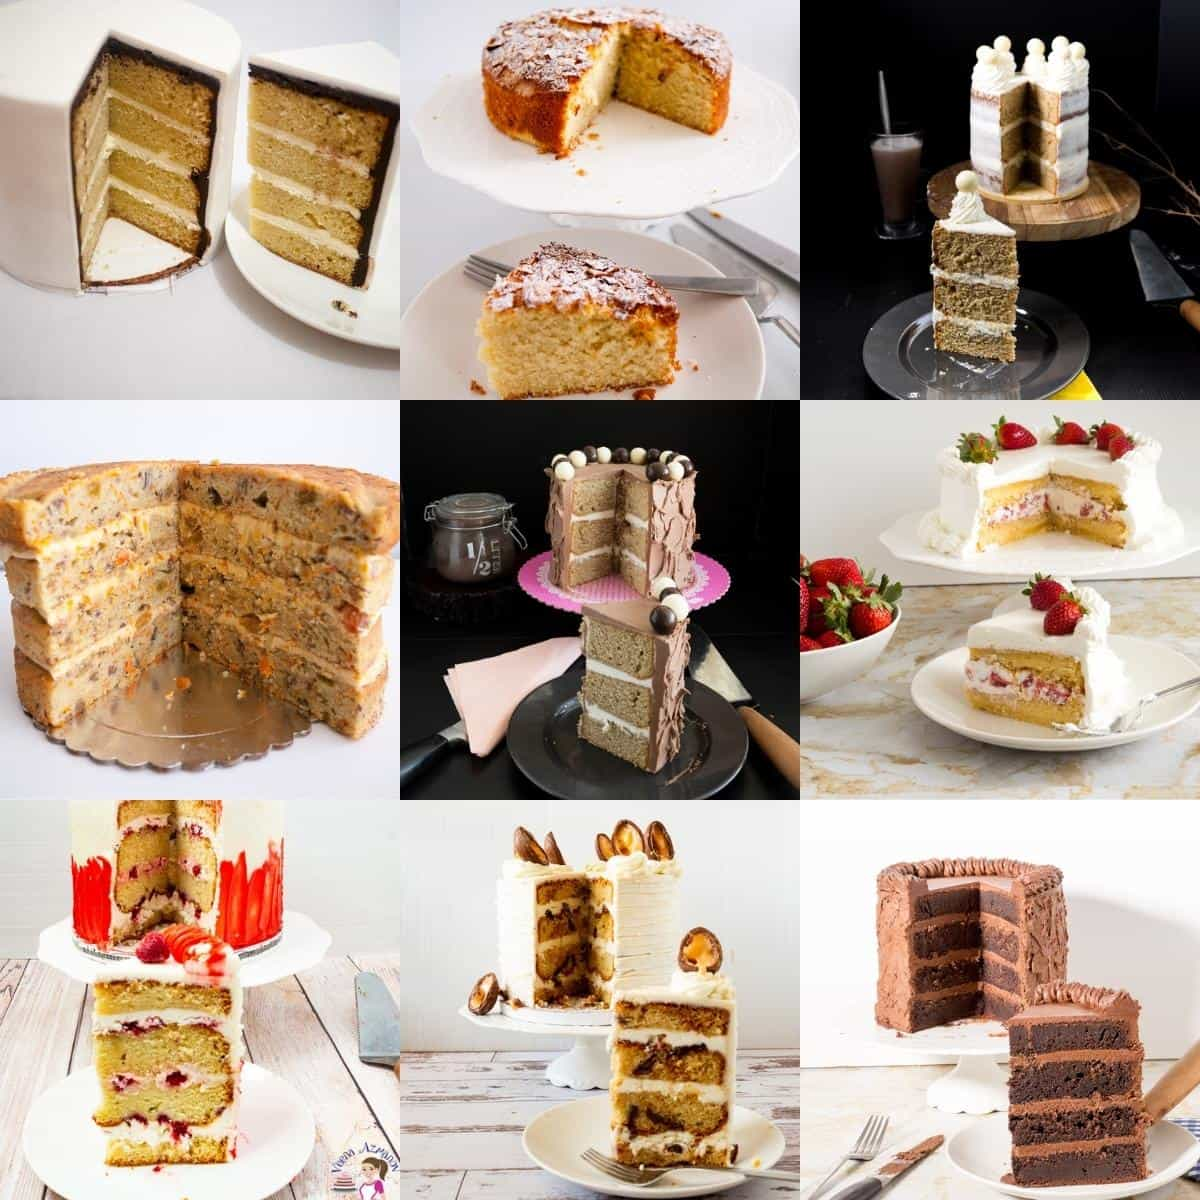 Collage of cut cakees showing different falvors.